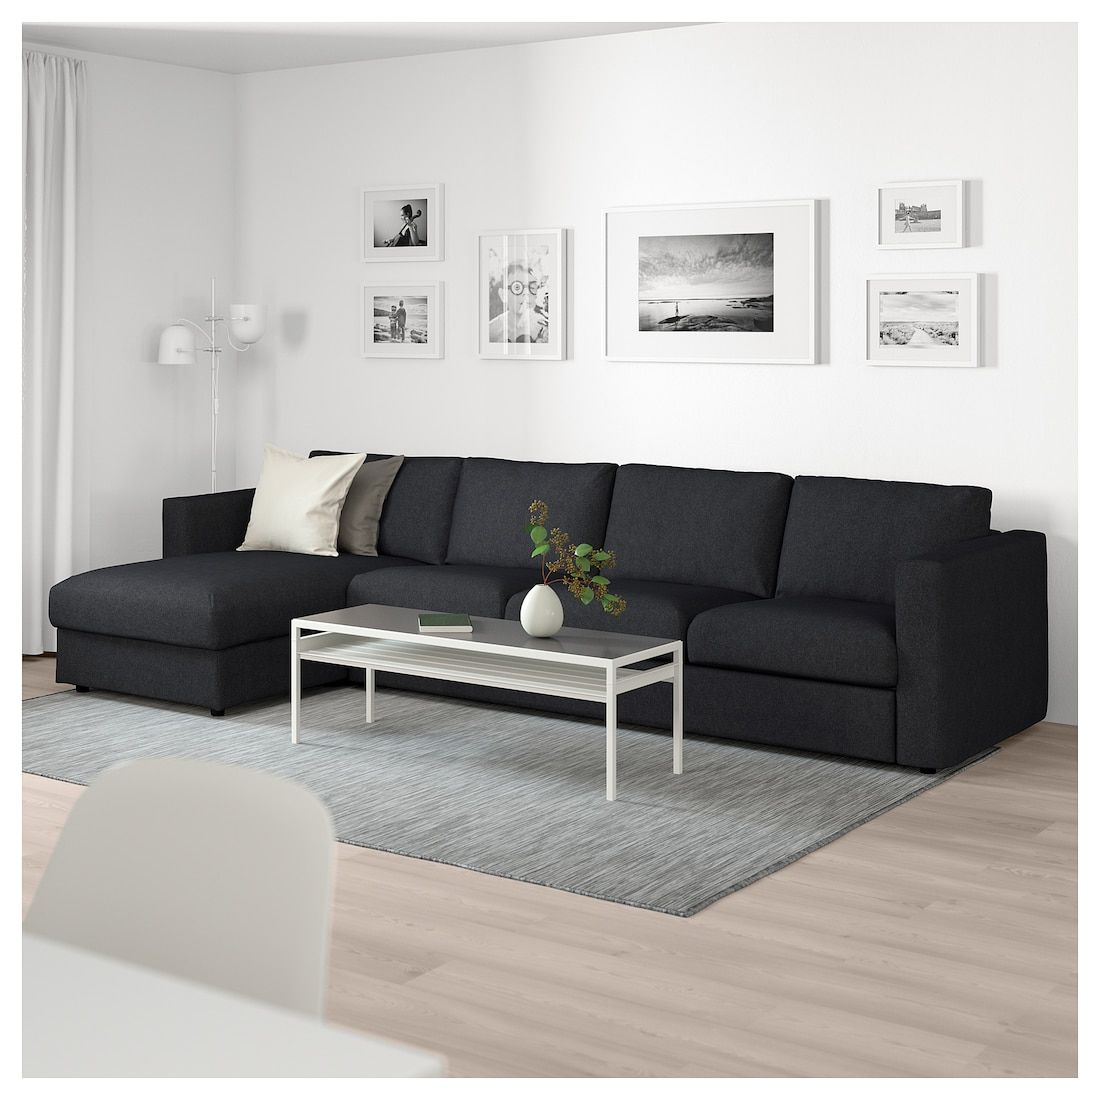 Ikea Us Furniture And Home Furnishings Living Room Designs Black Sectional Living Room Leather Sofa Living Room